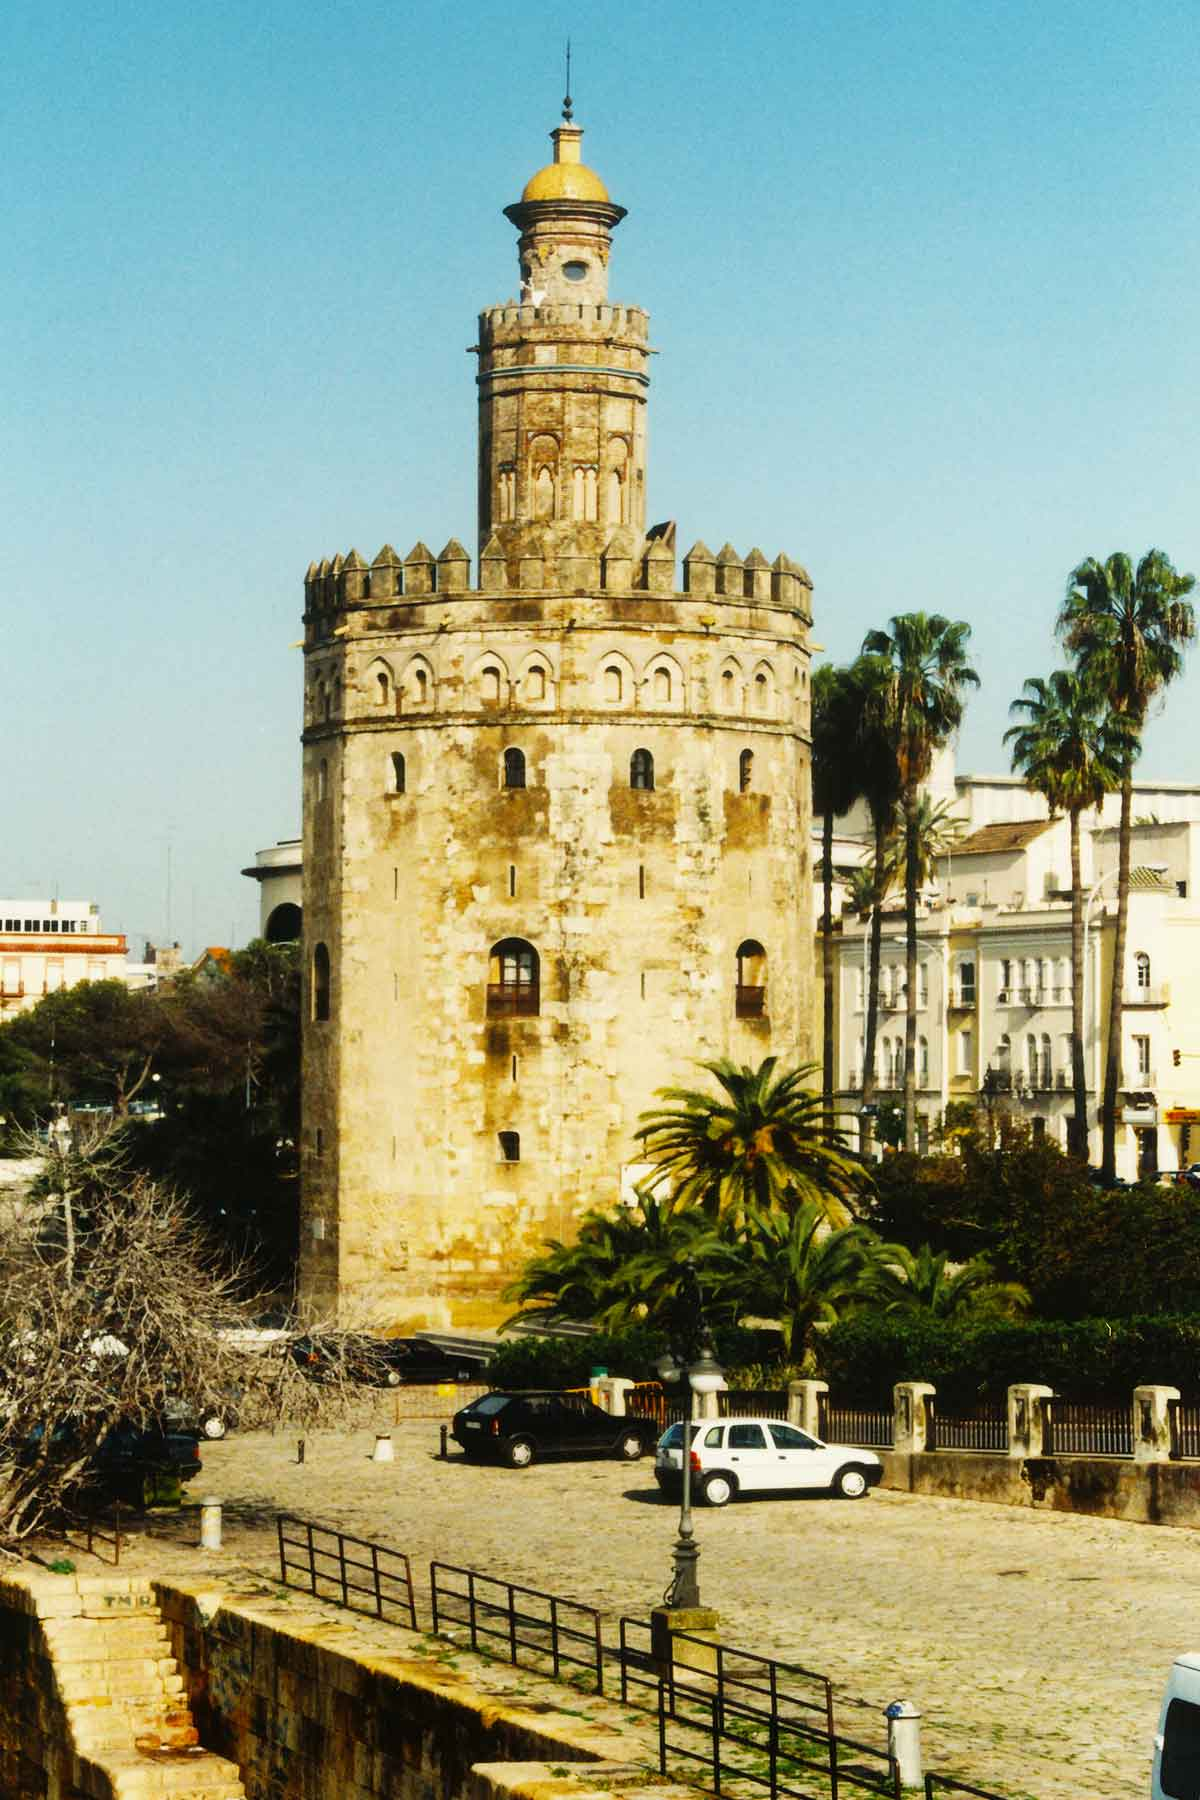 Torre del Oro - Tower of Gold - Seville Spain Photo Journal - Steven Andrew Martin 1998